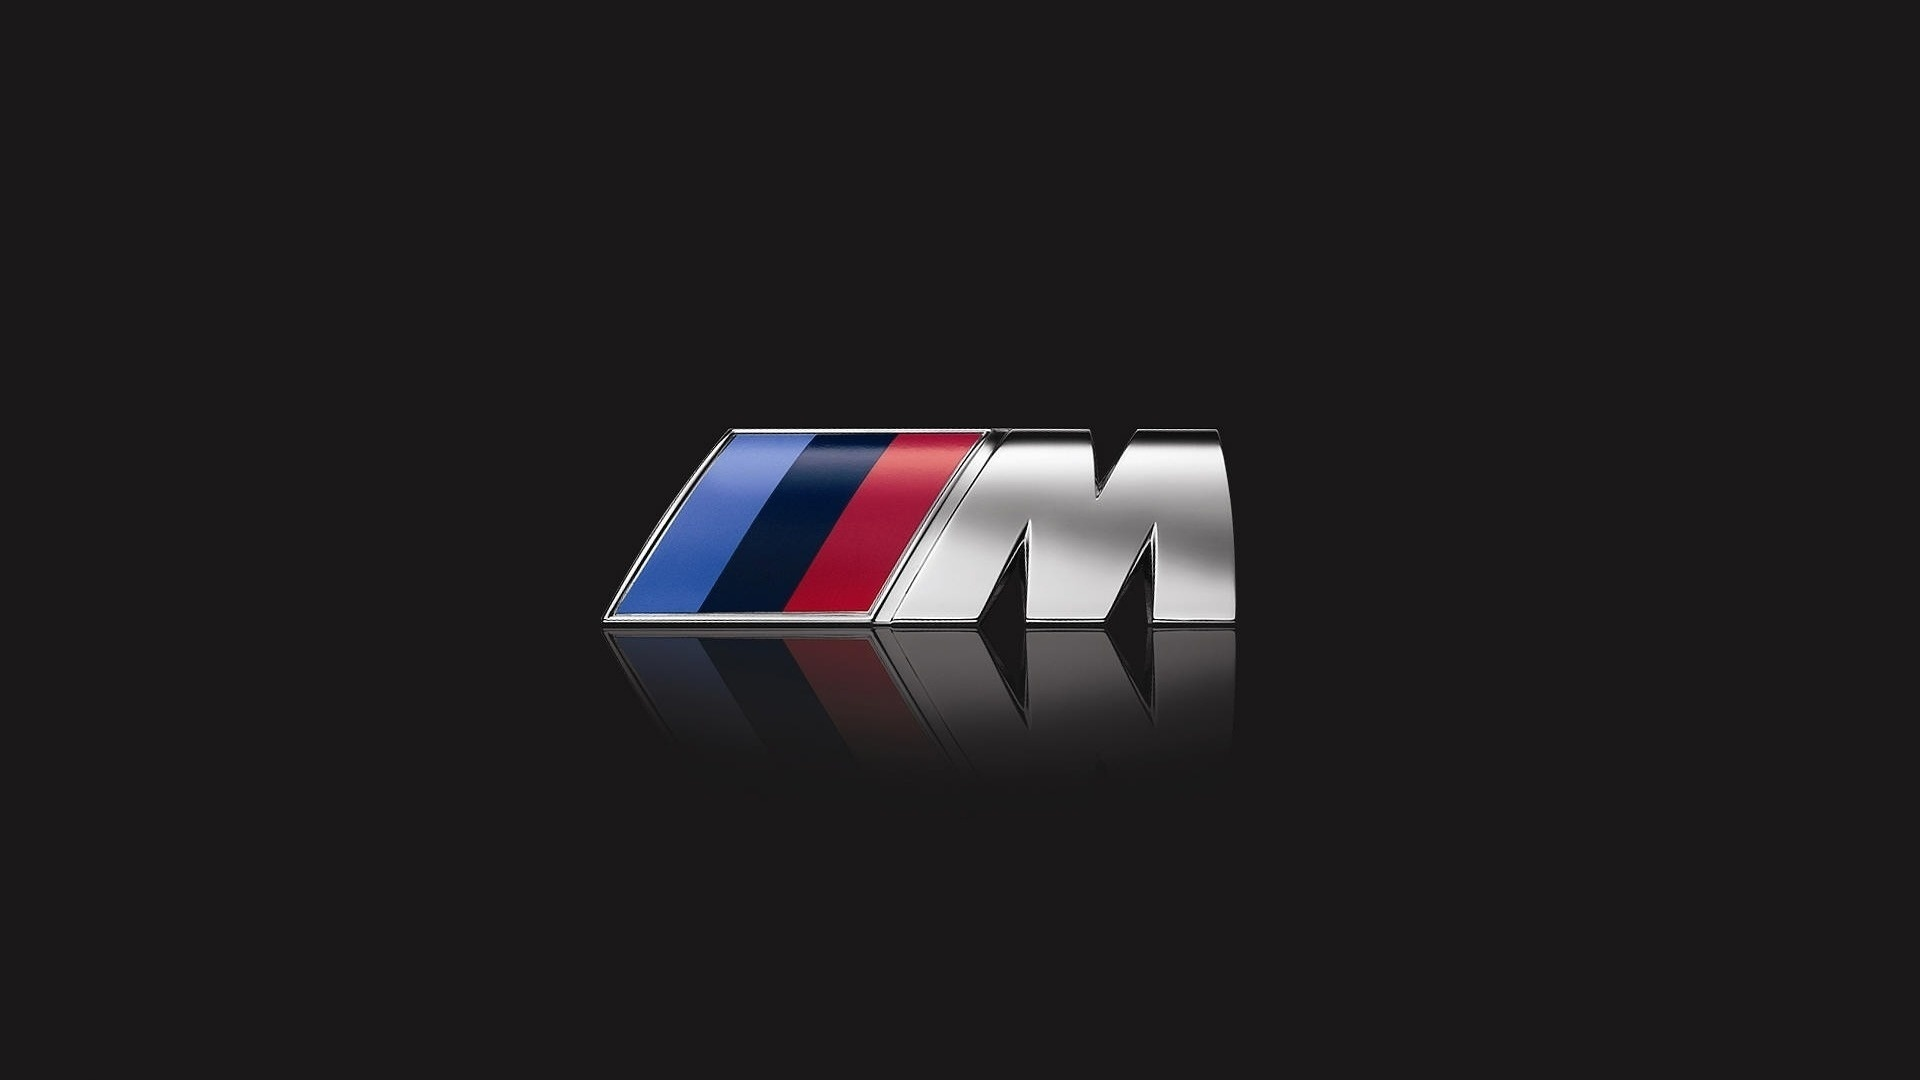 BMW M Logo Wallpaper Full HD Pictures 1920x1080